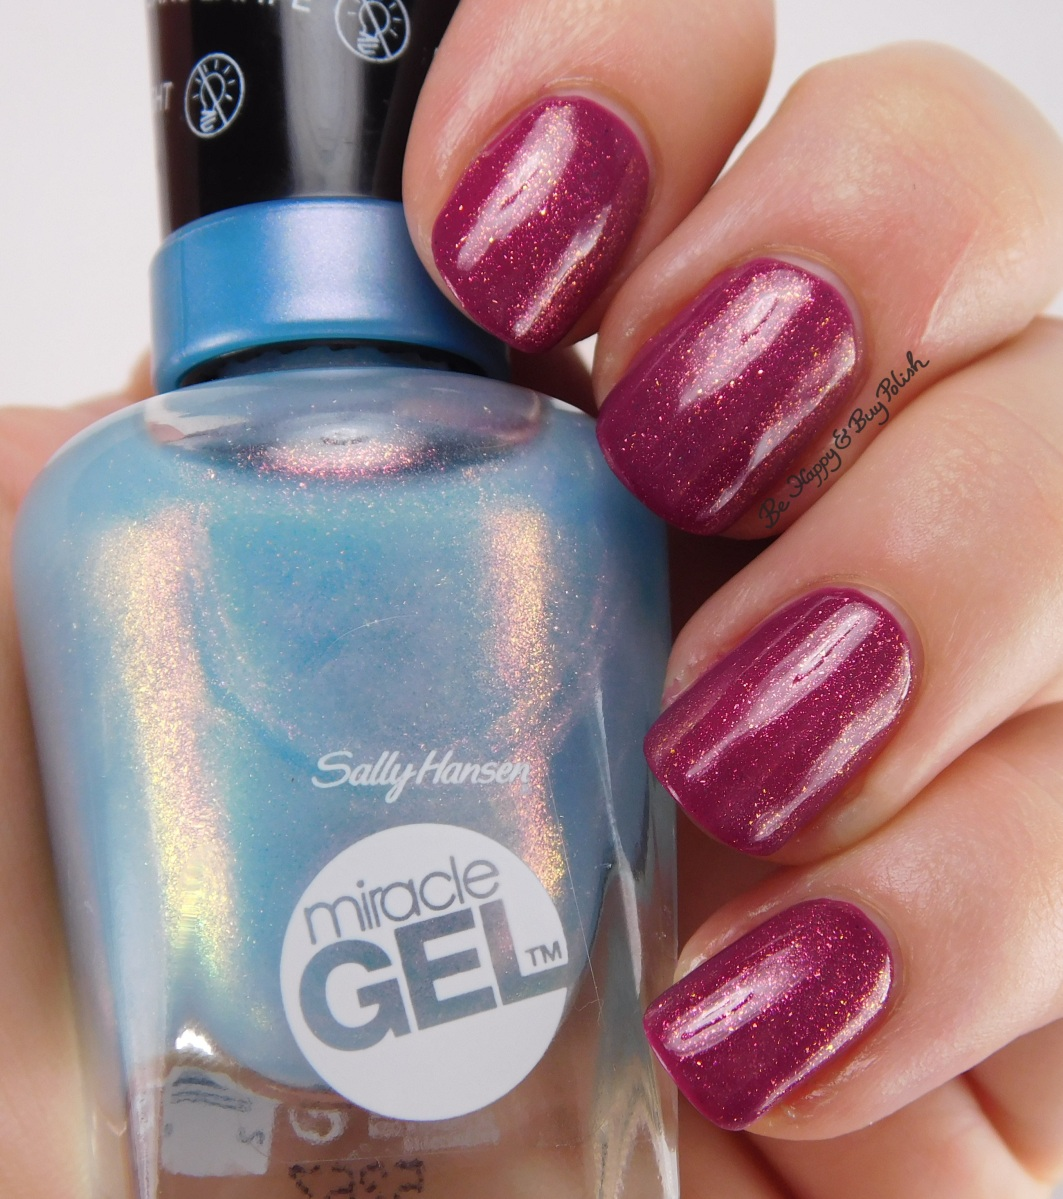 Sally Hansen Miracle Gel The Digital Overload nail polishes [partial] swatches + review